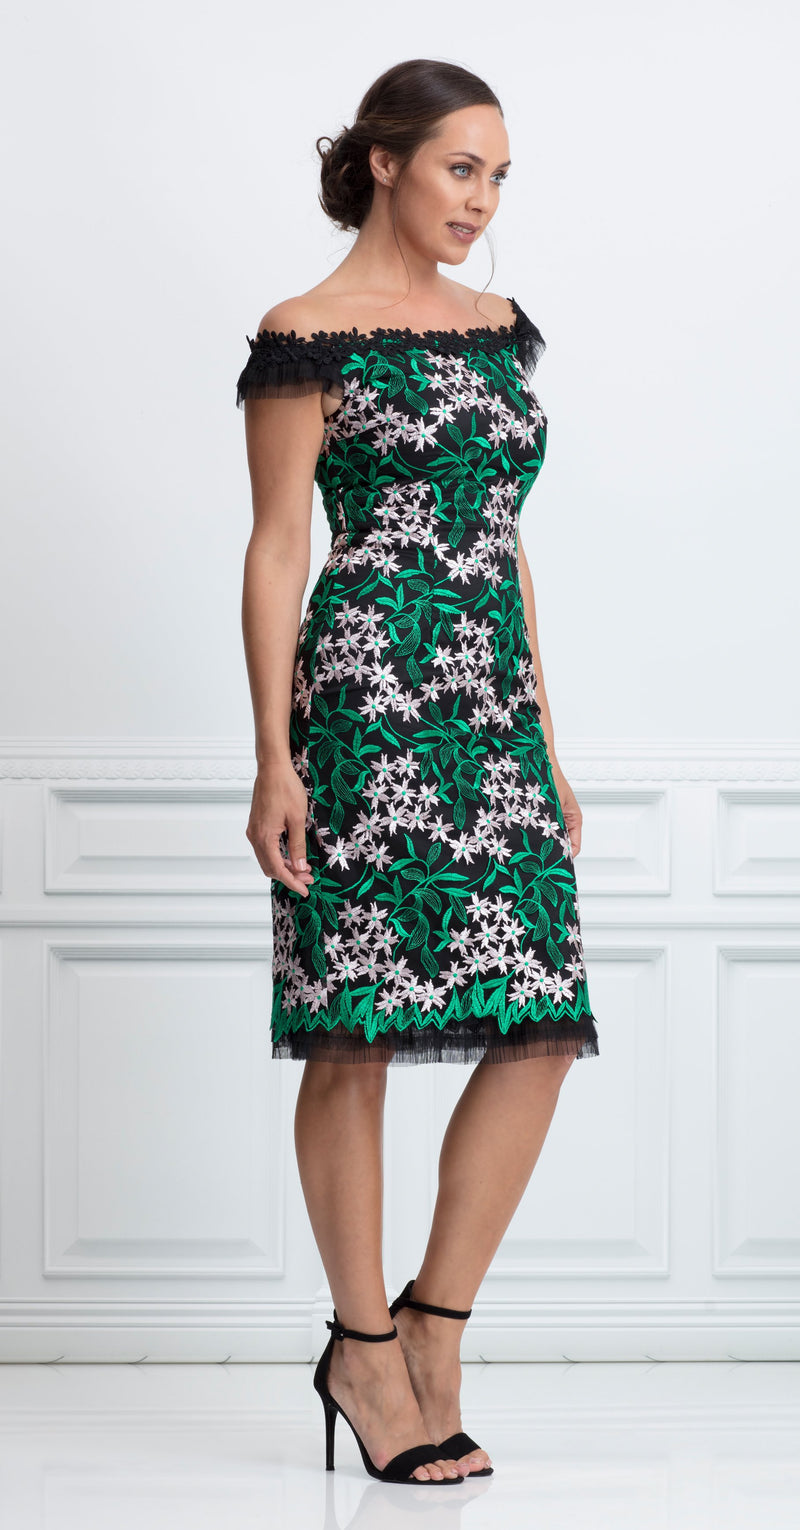 Salamanca Lace dress